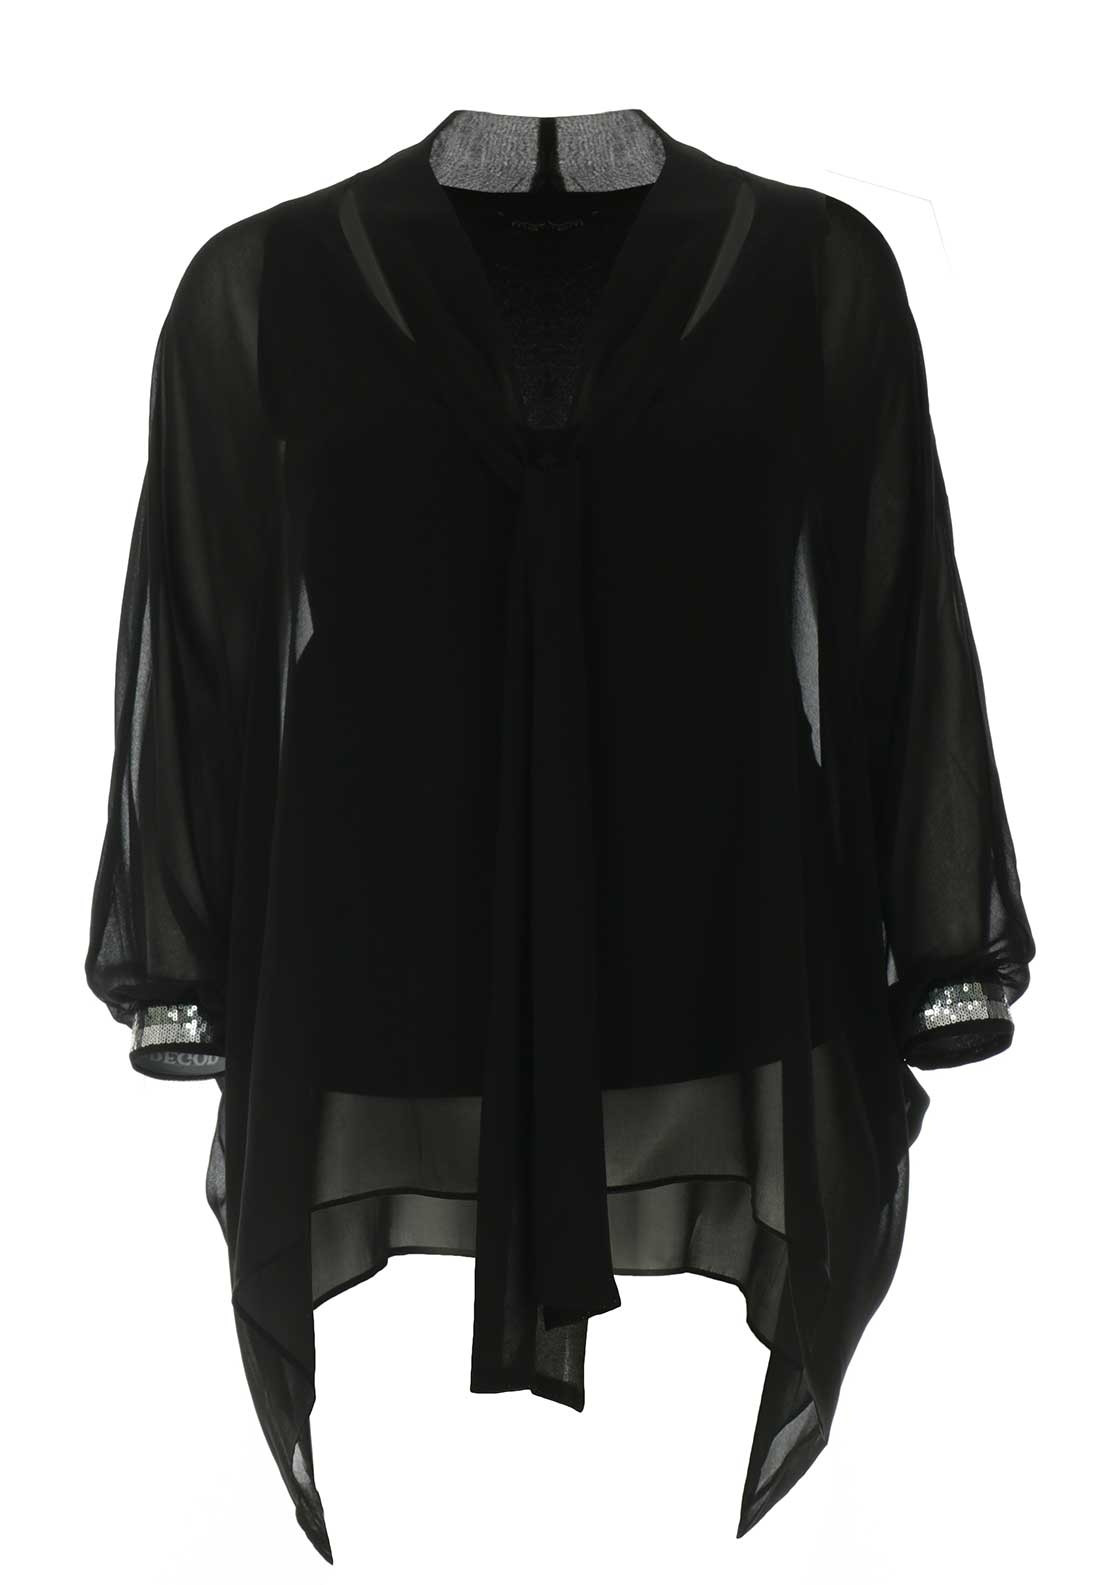 7f132442f30 Mat Sequin Cuff Chiffon Overlay Top, Black. Be the first to review this  product